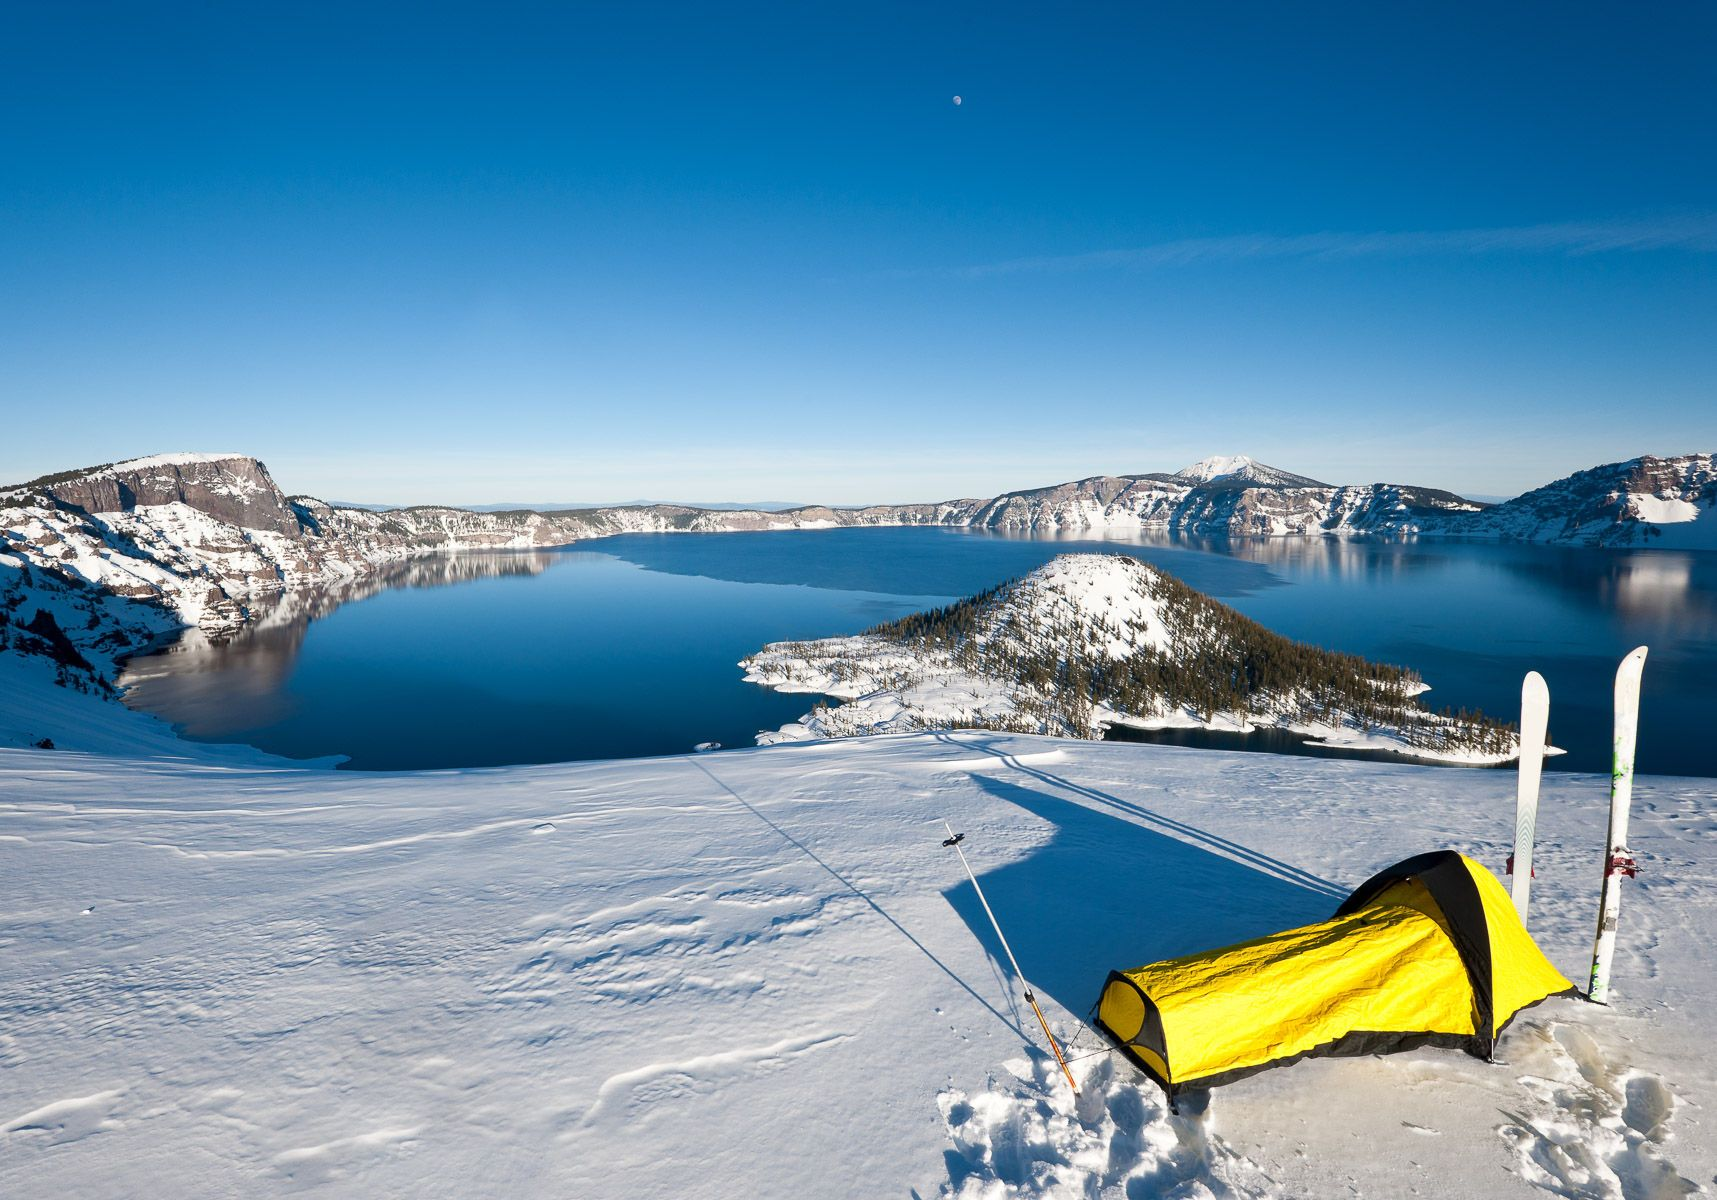 Winter Ski Camping at Crater Lake